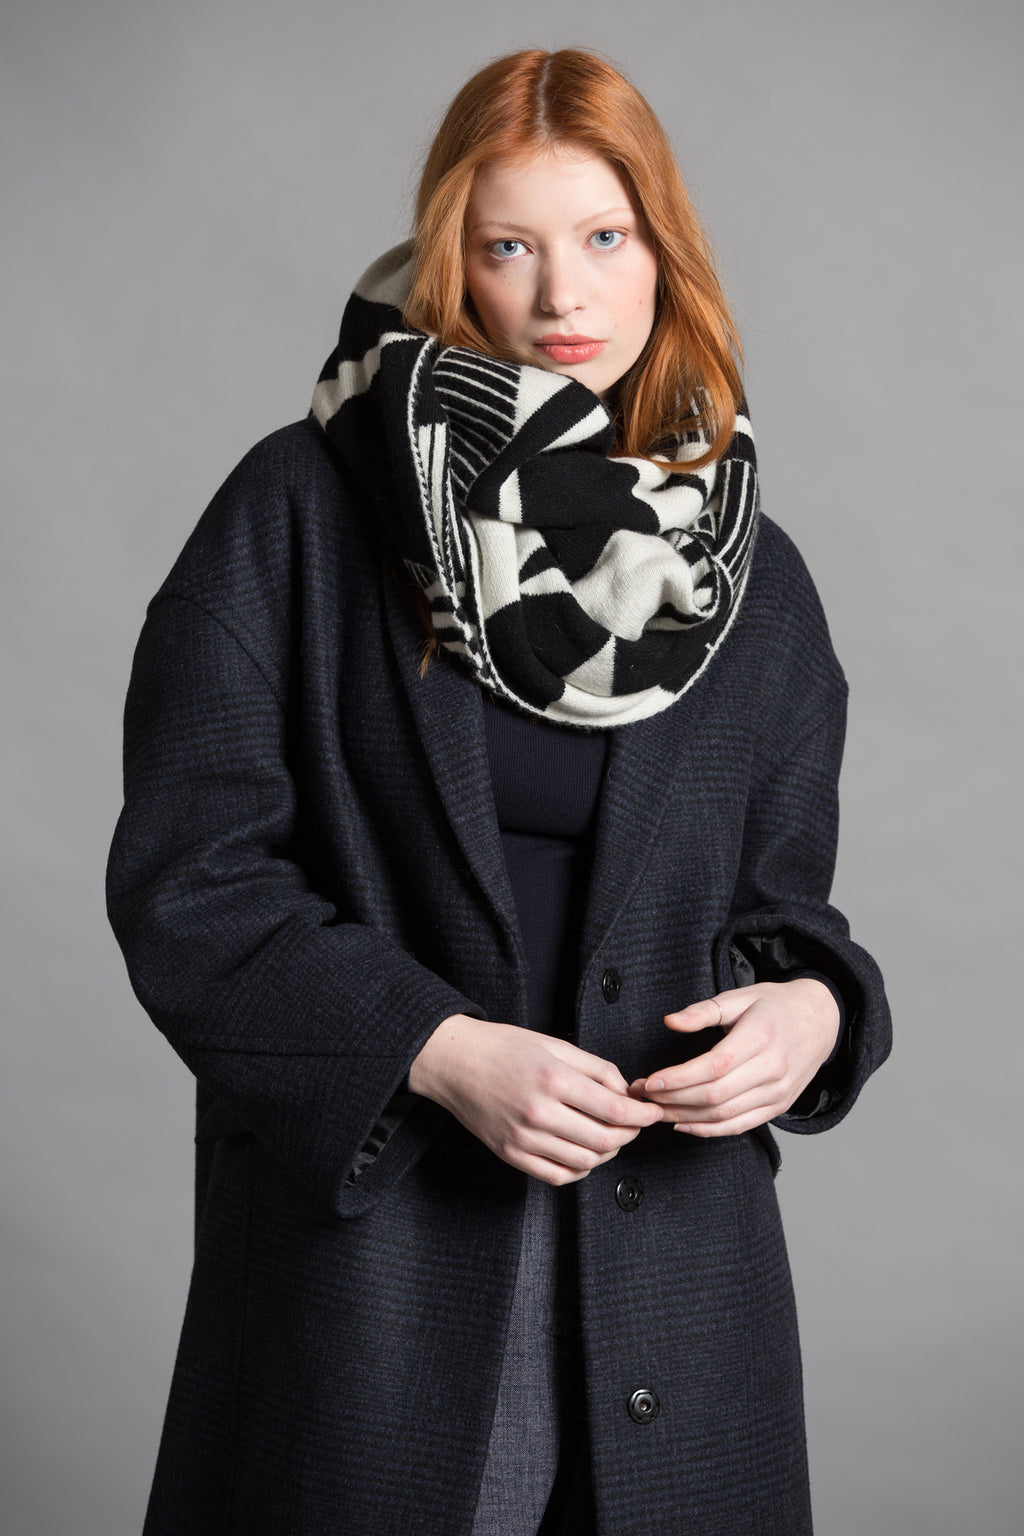 SEMAPHORE BLANKET SCARF BLACK WHITE - GREEN THOMAS